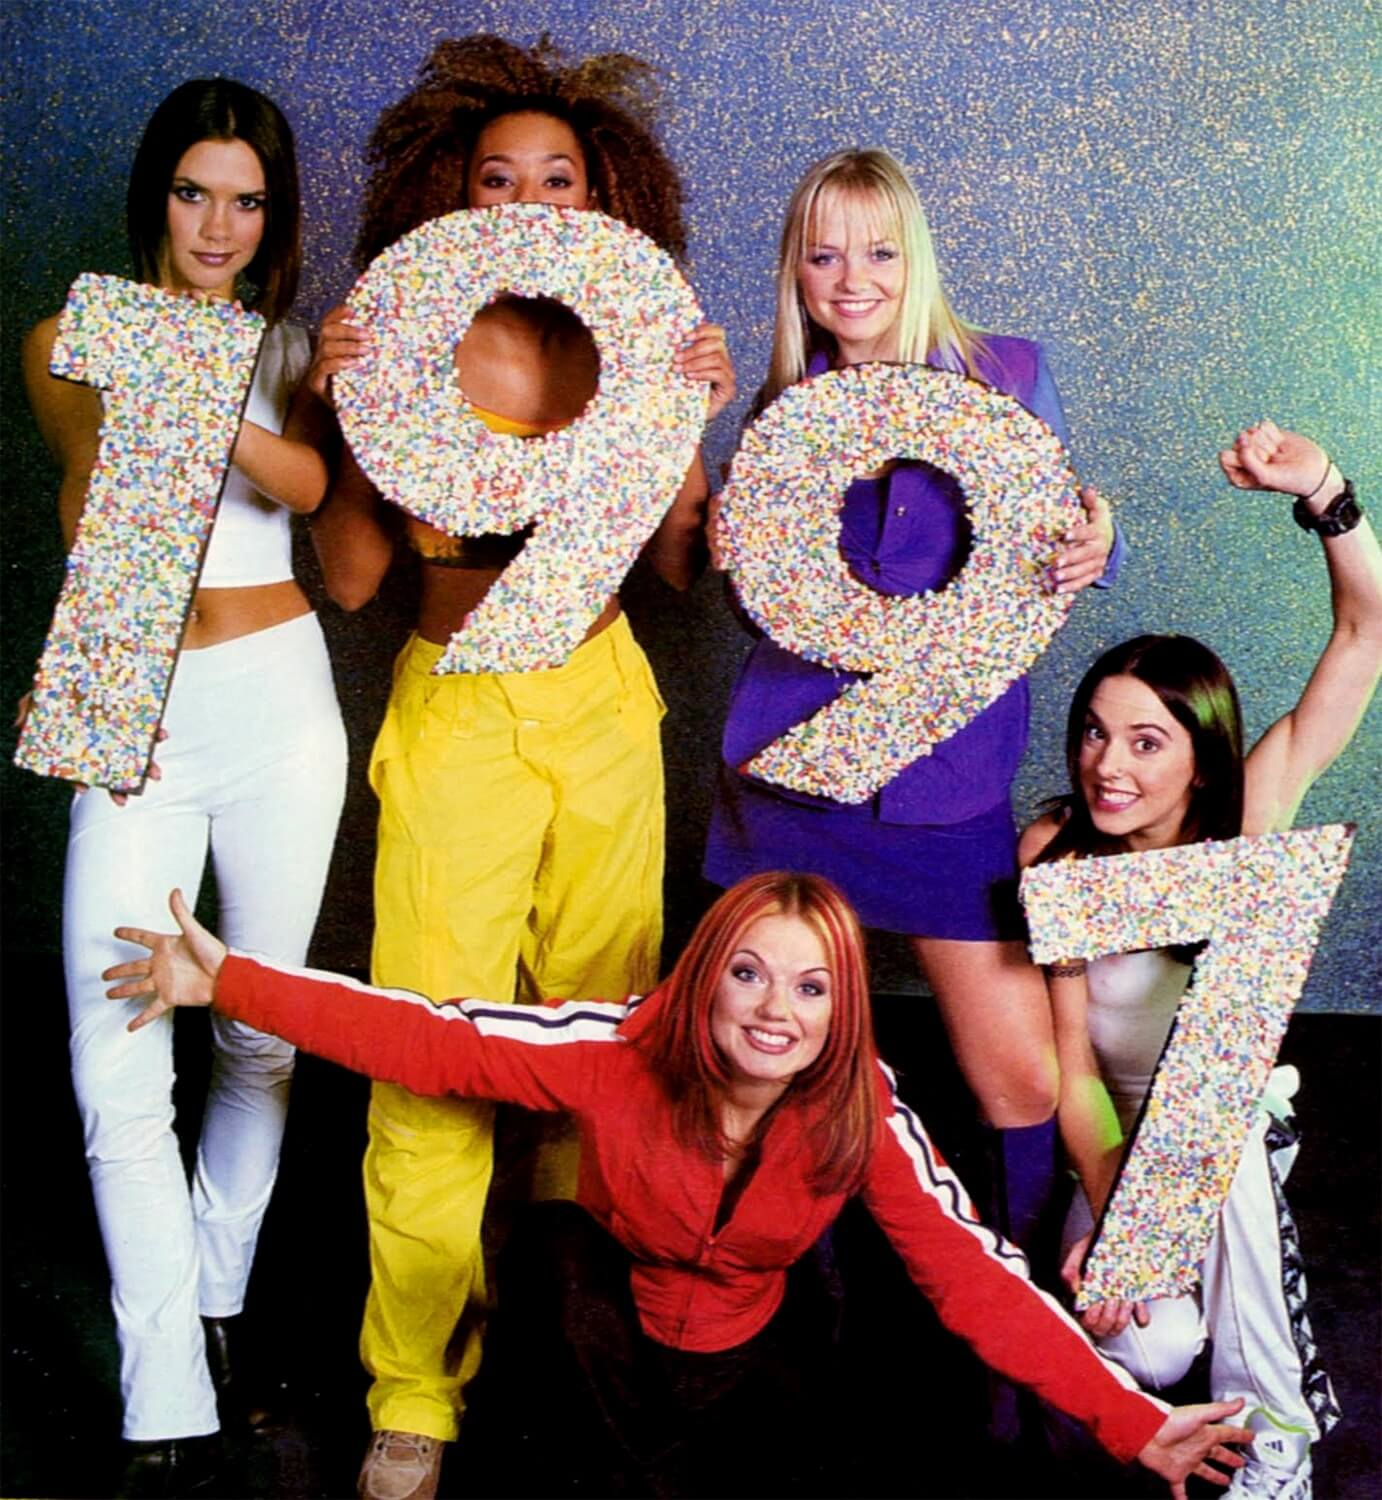 spice girls 1997